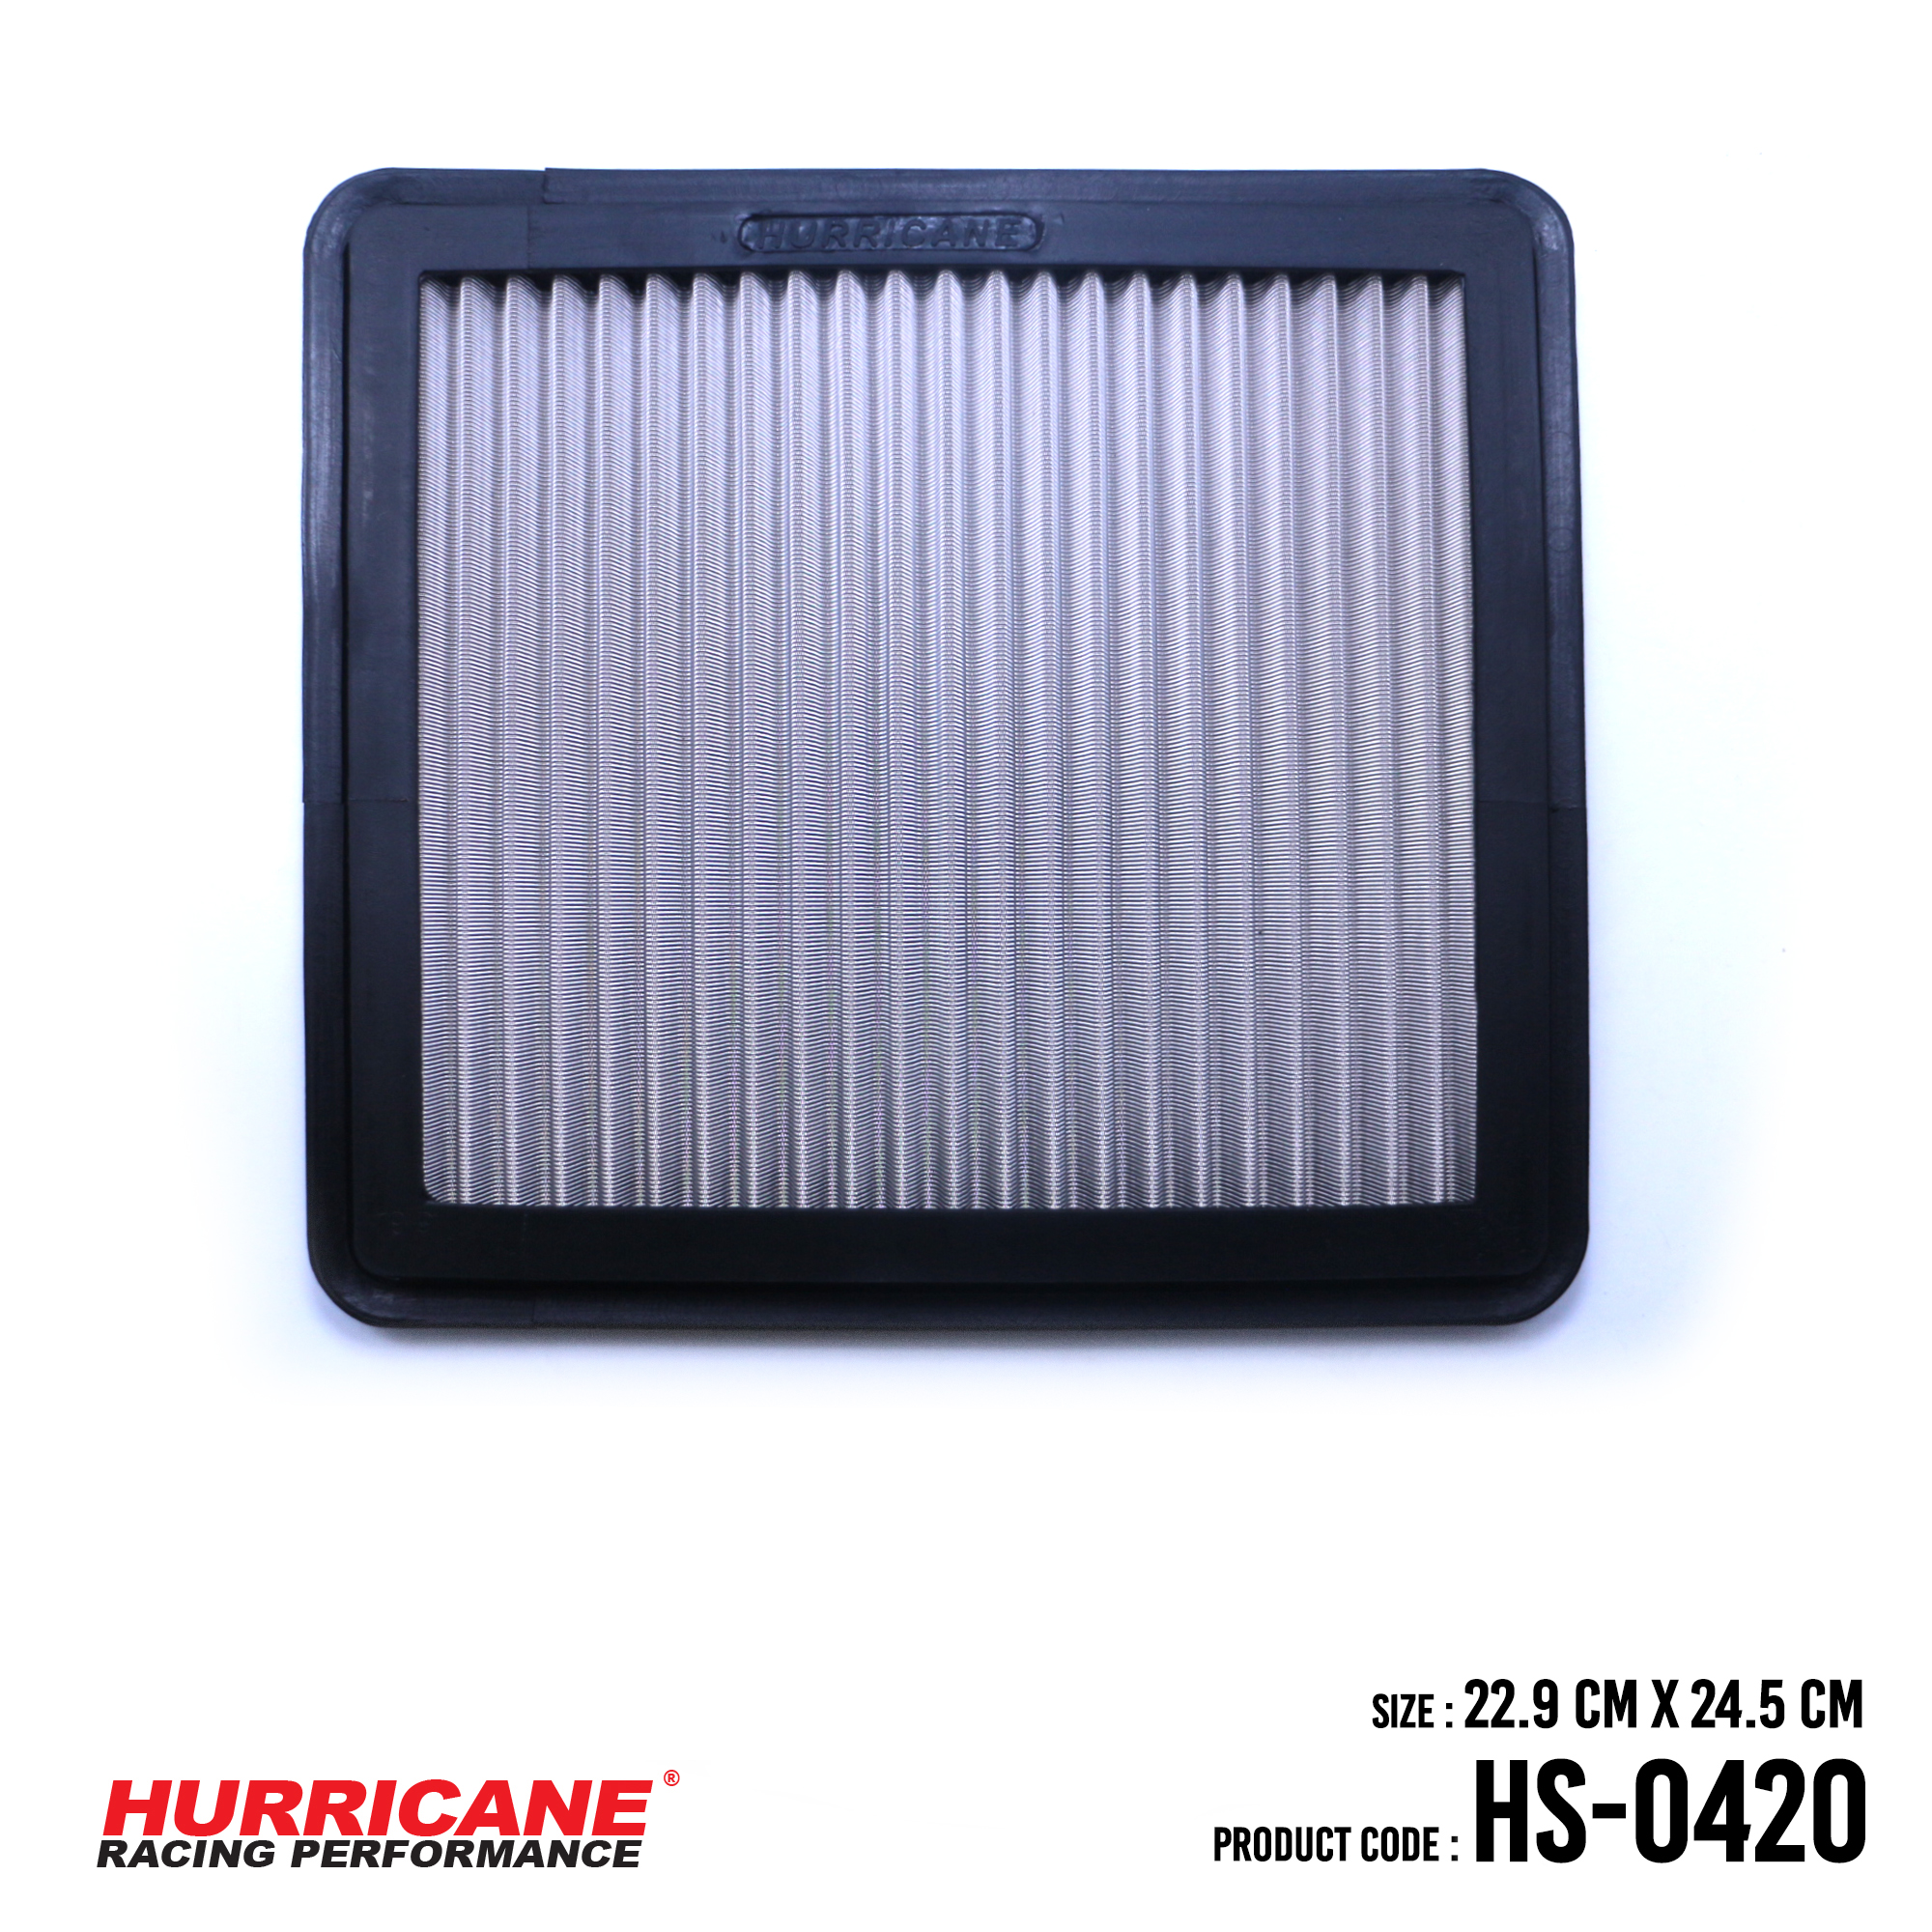 HURRICANE STAINLESS STEEL AIR FILTER FOR HS-0420 Proton